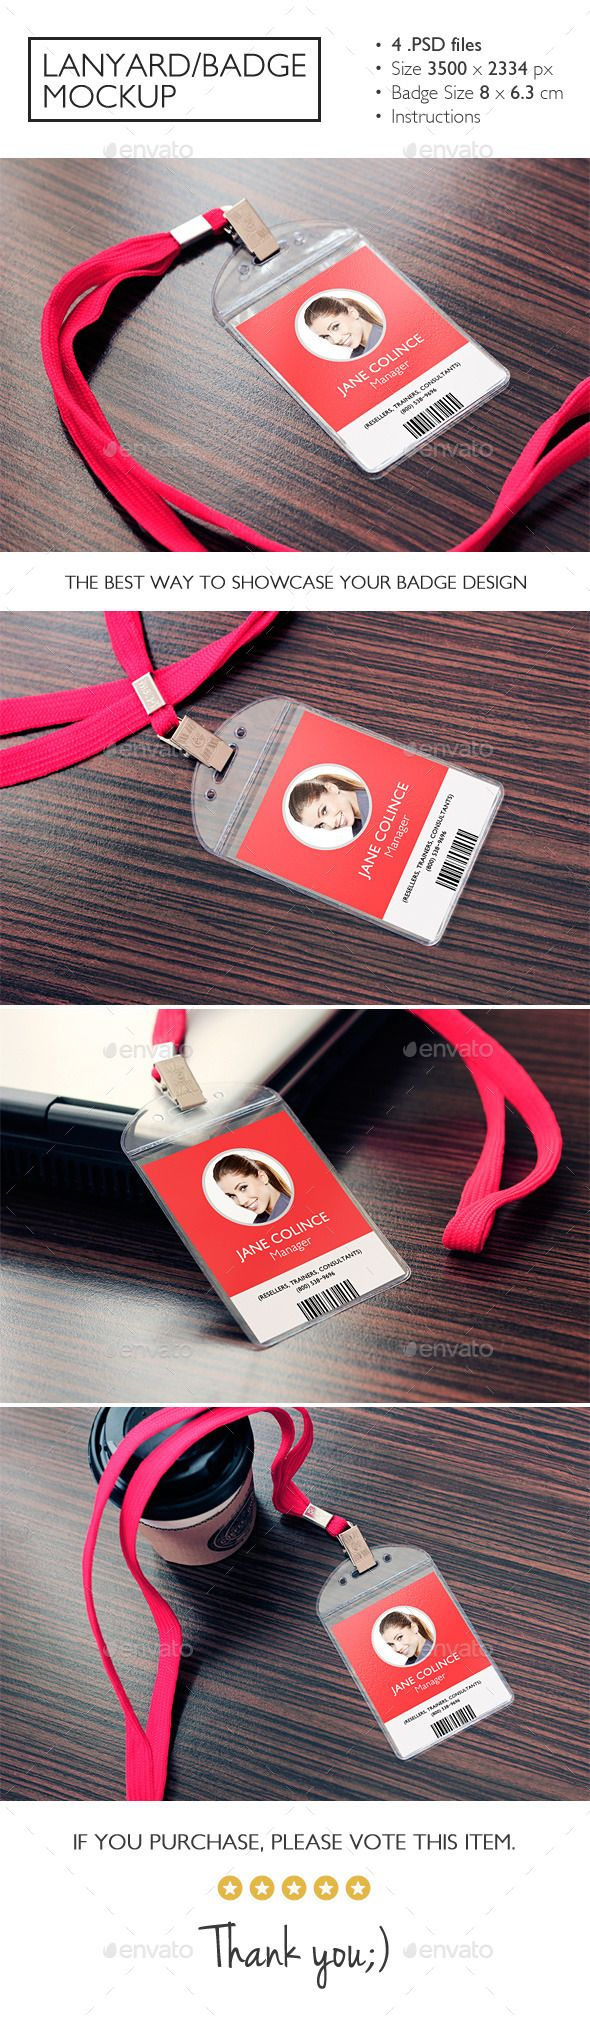 Lanyard/Badge Mockup | Download: http://graphicriver.net/item/lanyardbadge-mockup/11037634?ref=ksioks